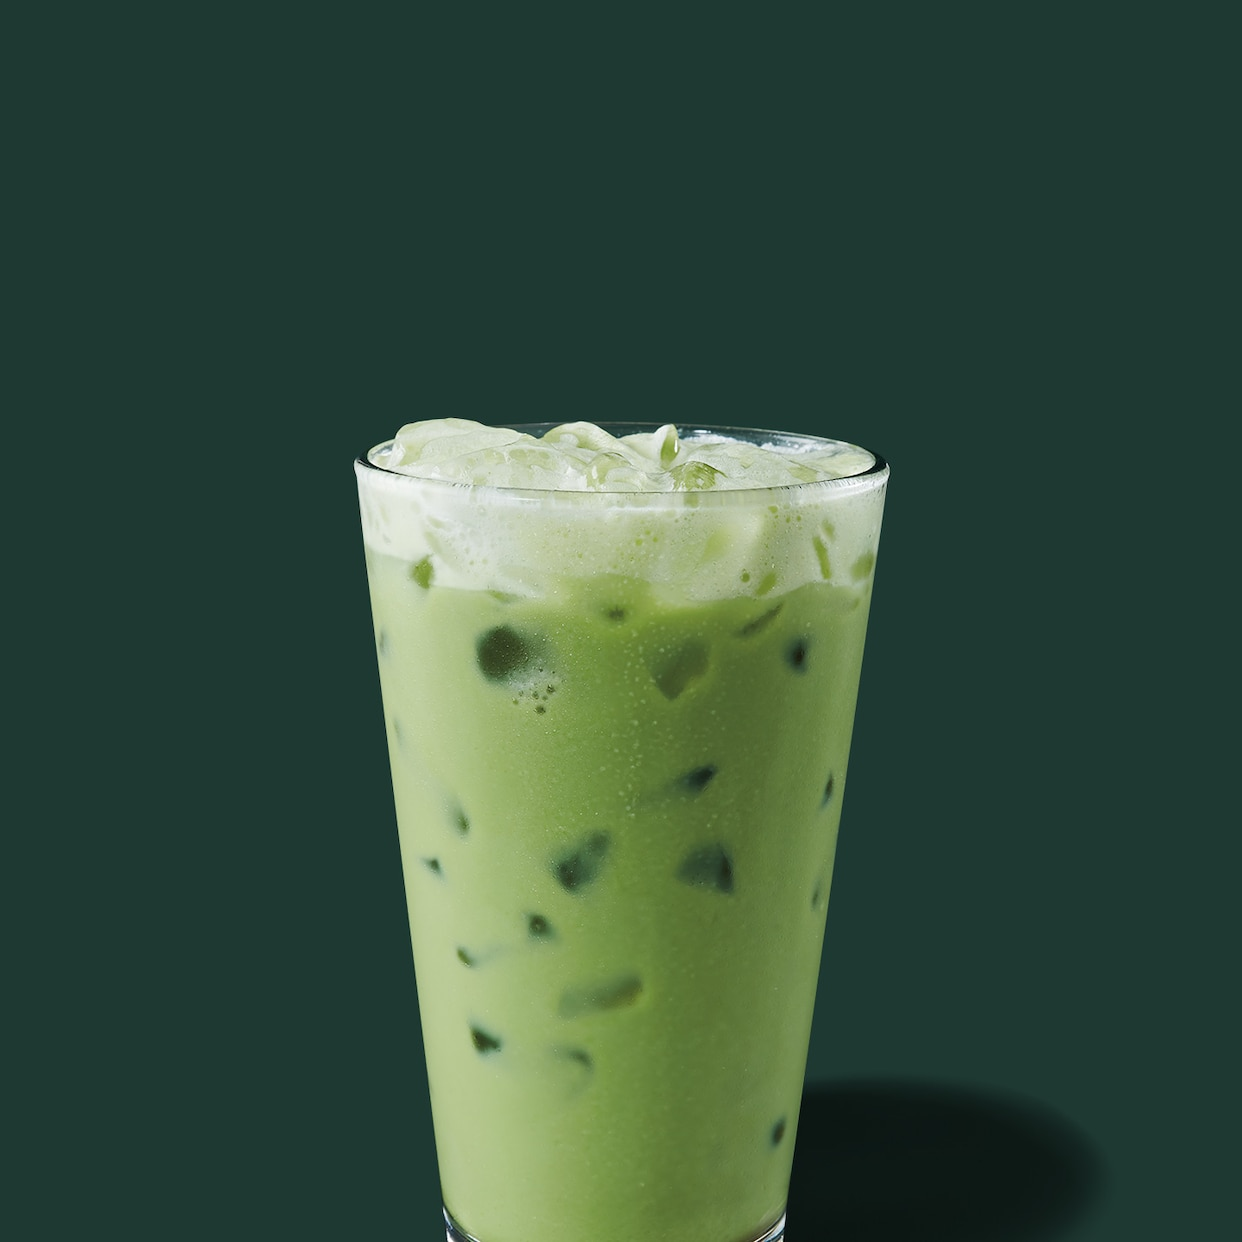 Starbucks Iced Green Tea Latte Recipe Card